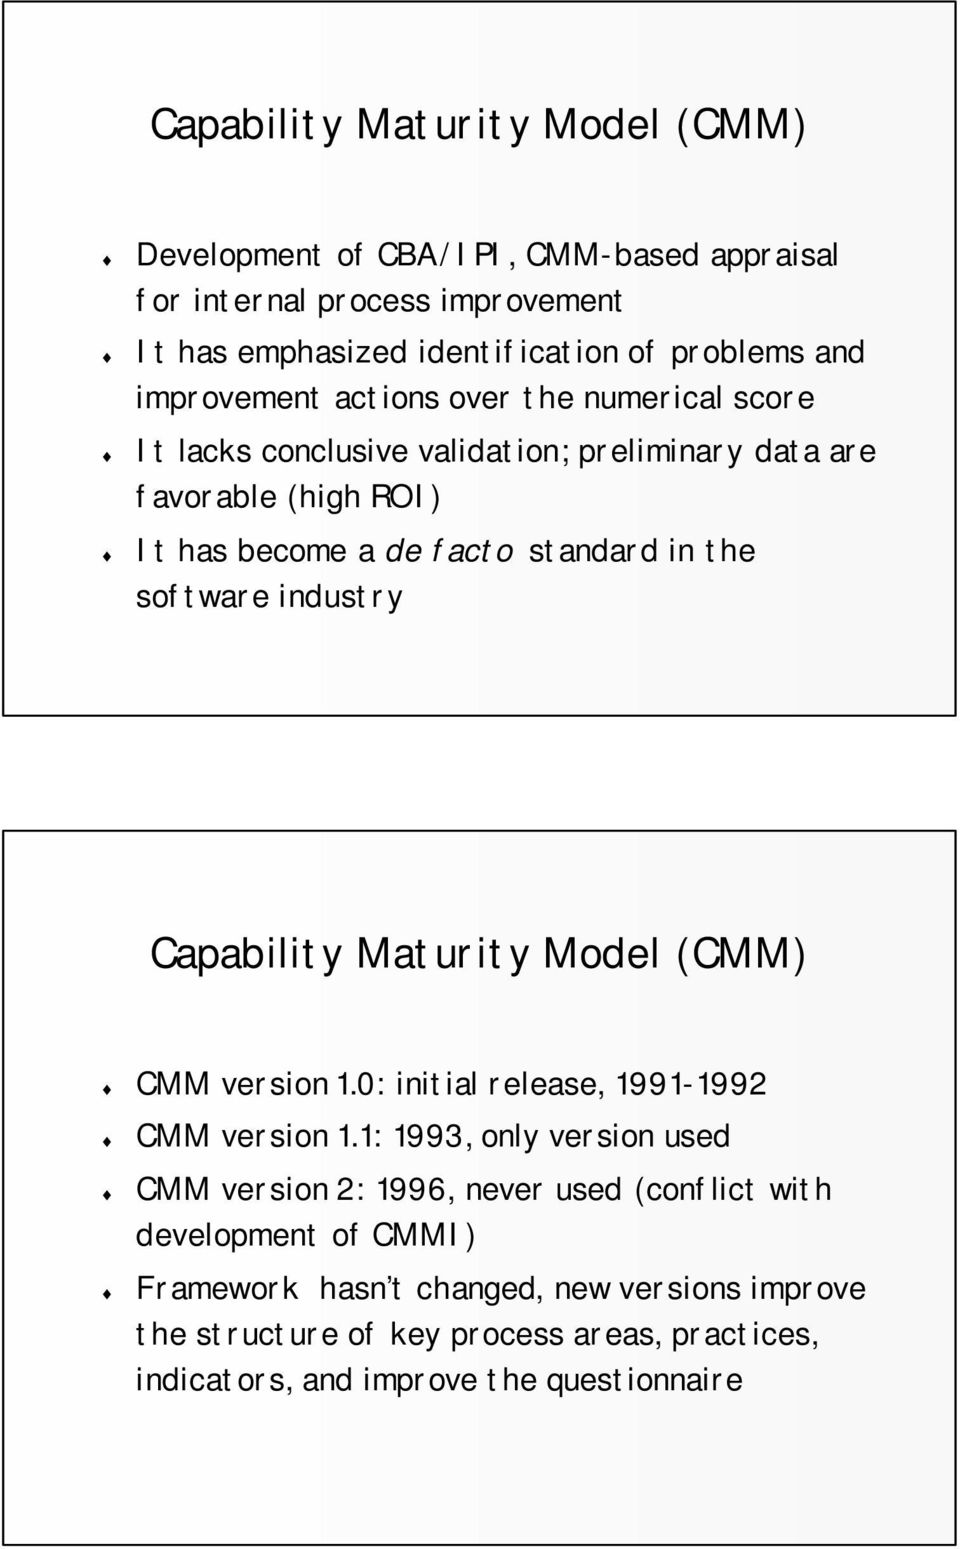 software industry Capability Maturity Model (CMM) CMM version 1.0: initial release, 1991-1992 CMM version 1.